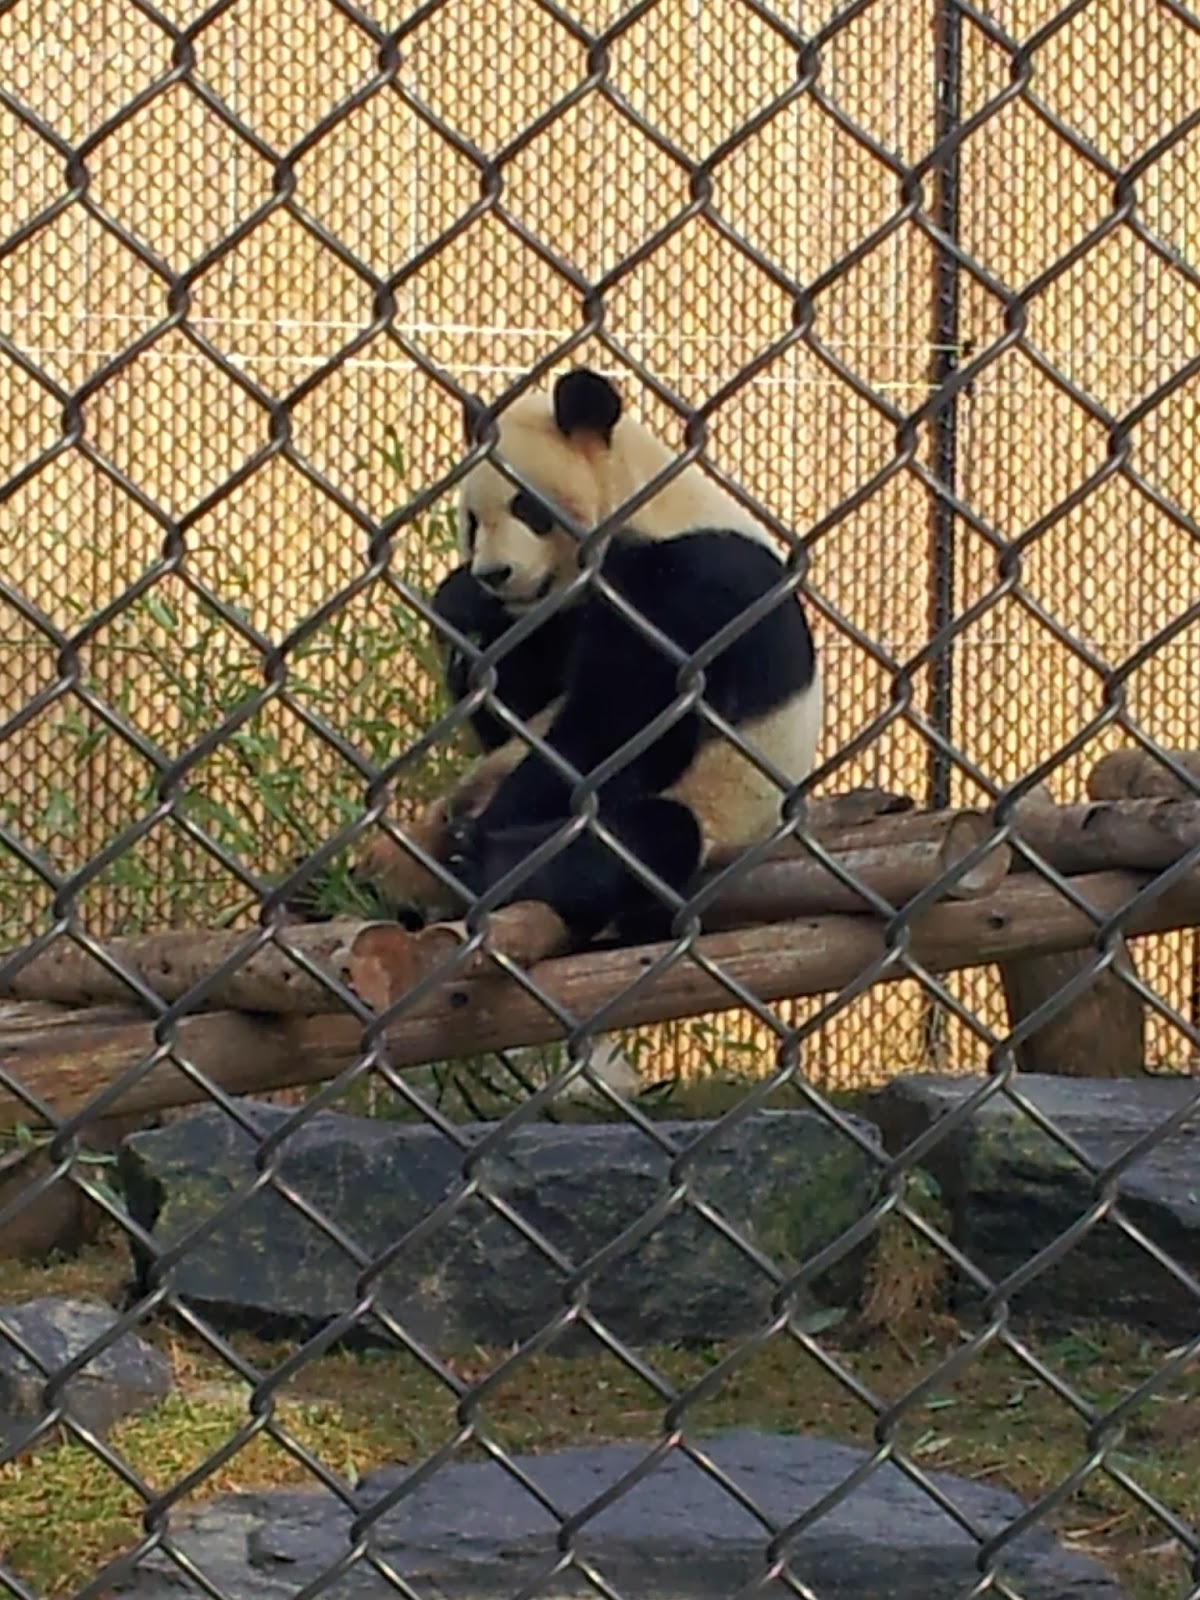 panda, bear, zoo, Toronto Zoo, animals